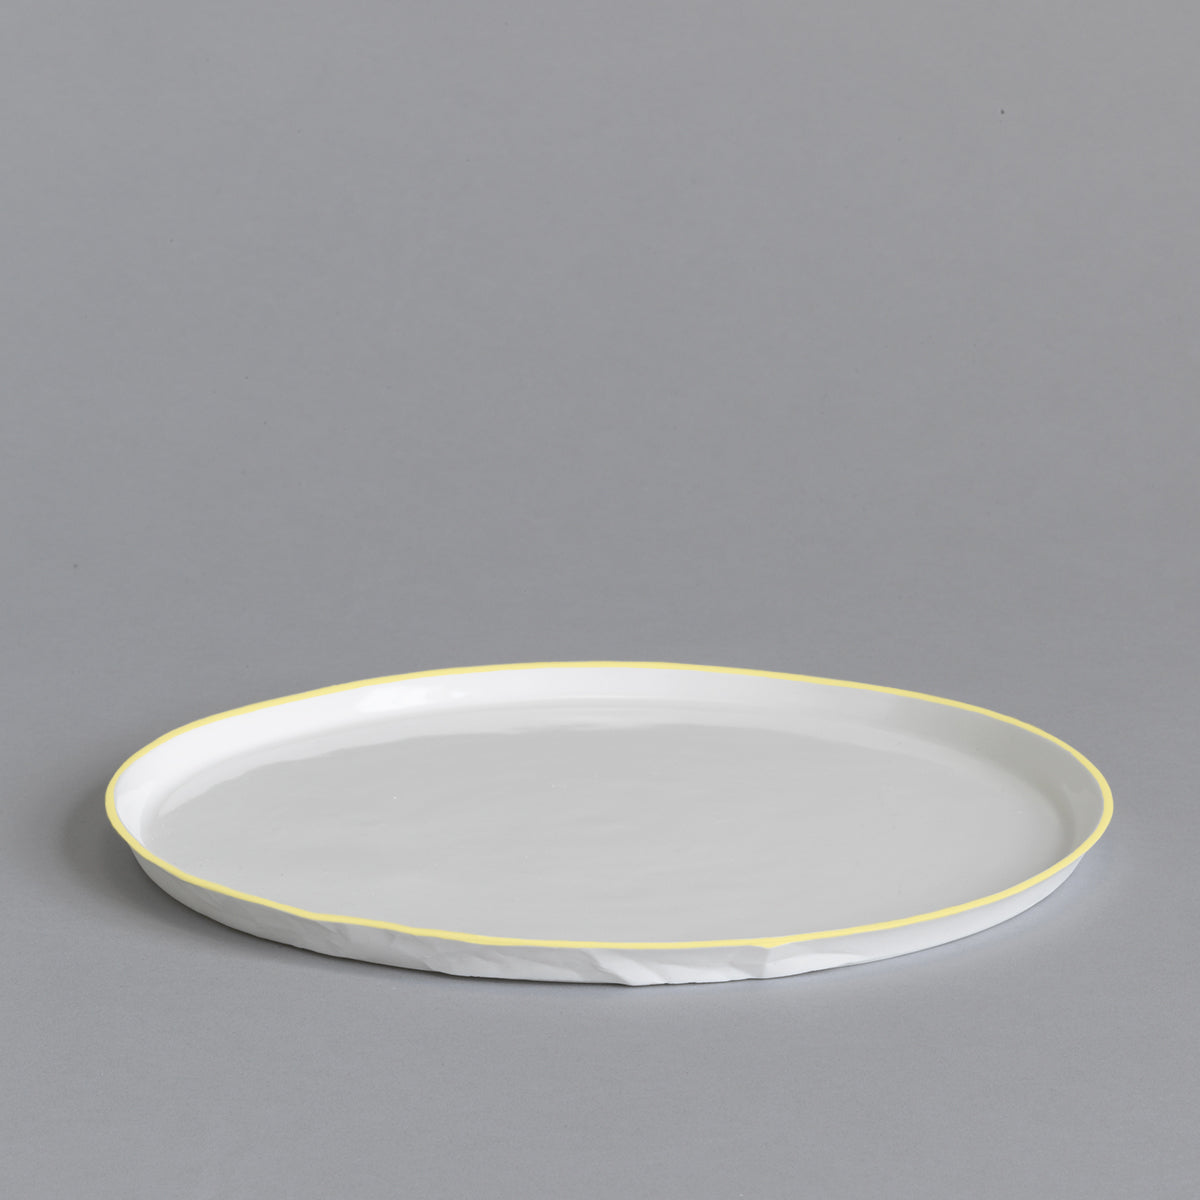 Ceramic Dinner Plate Set of 4 - Paper